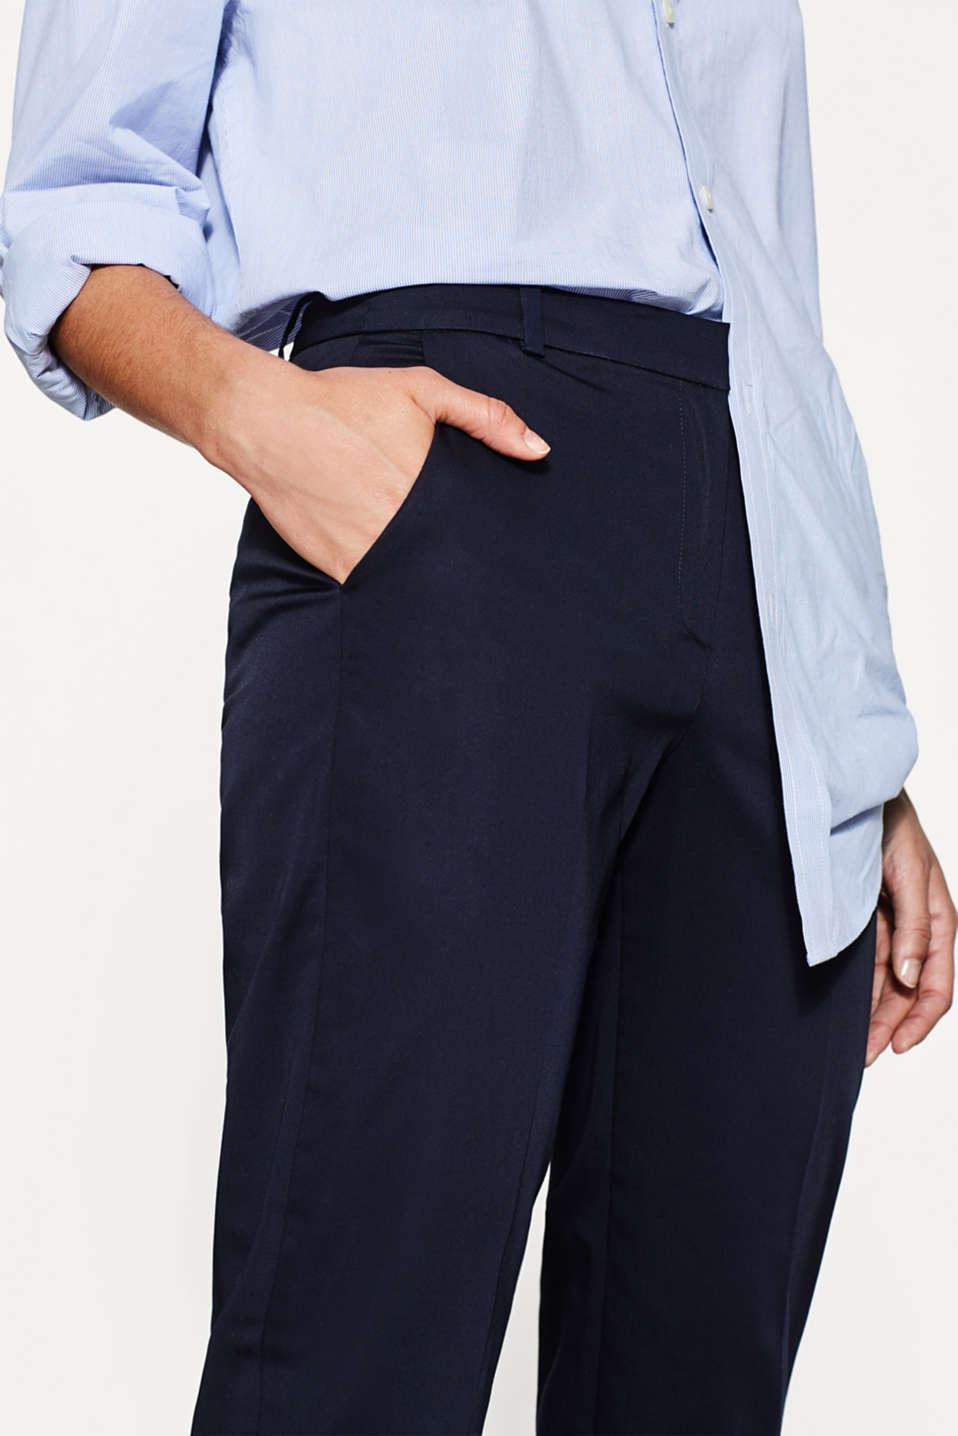 SOFT SATIN Mix + match trousers, NAVY, detail image number 2